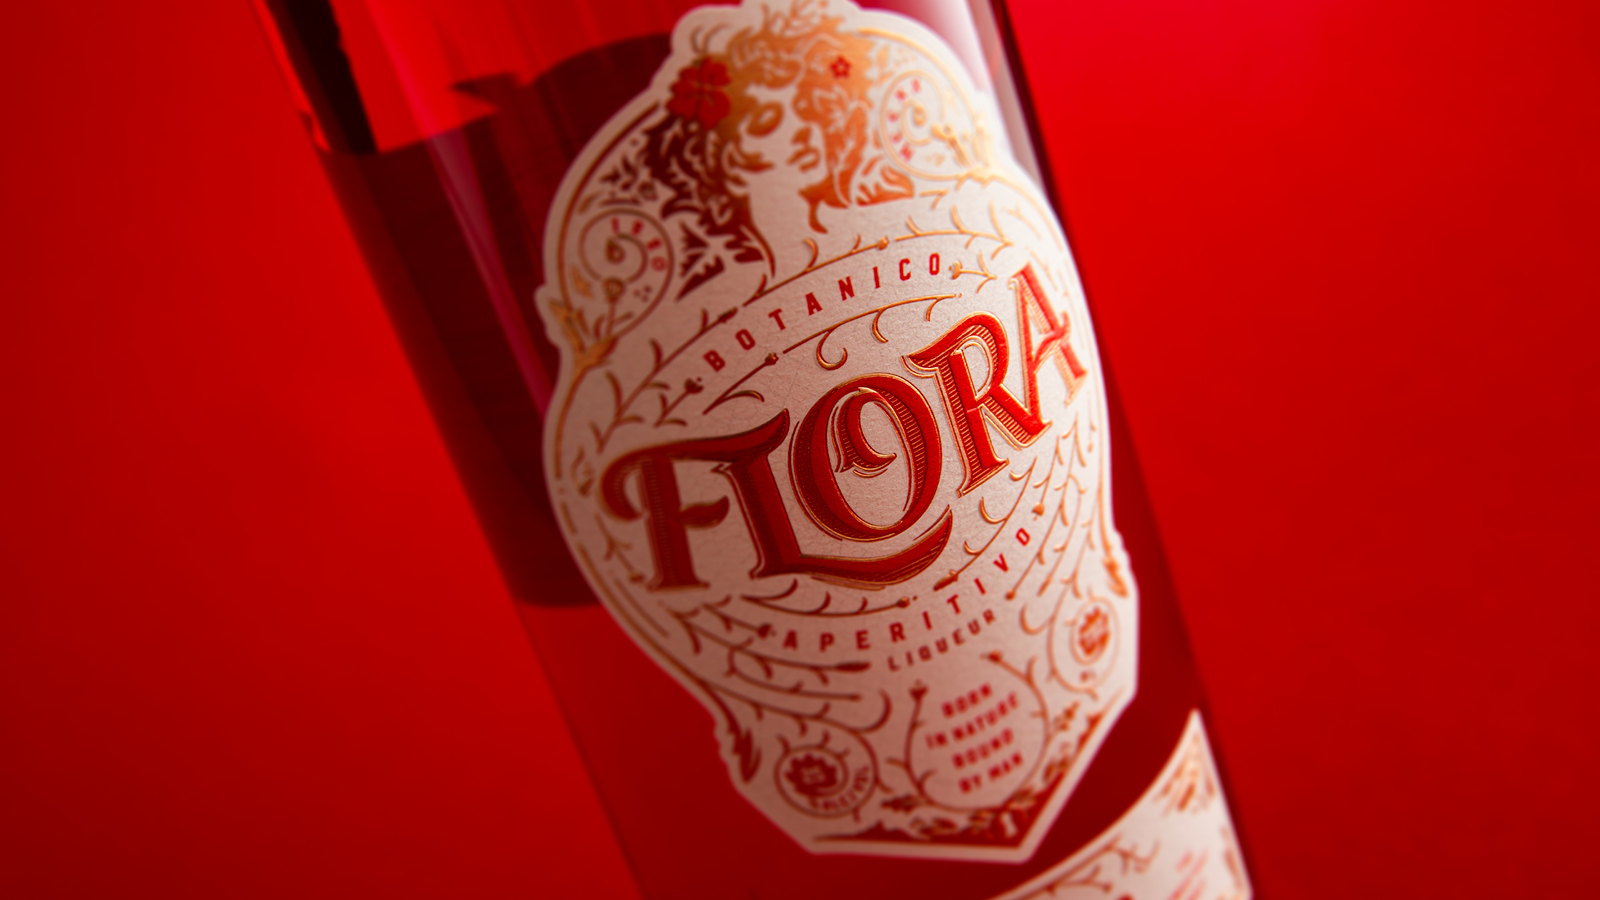 Flora bottle on red background